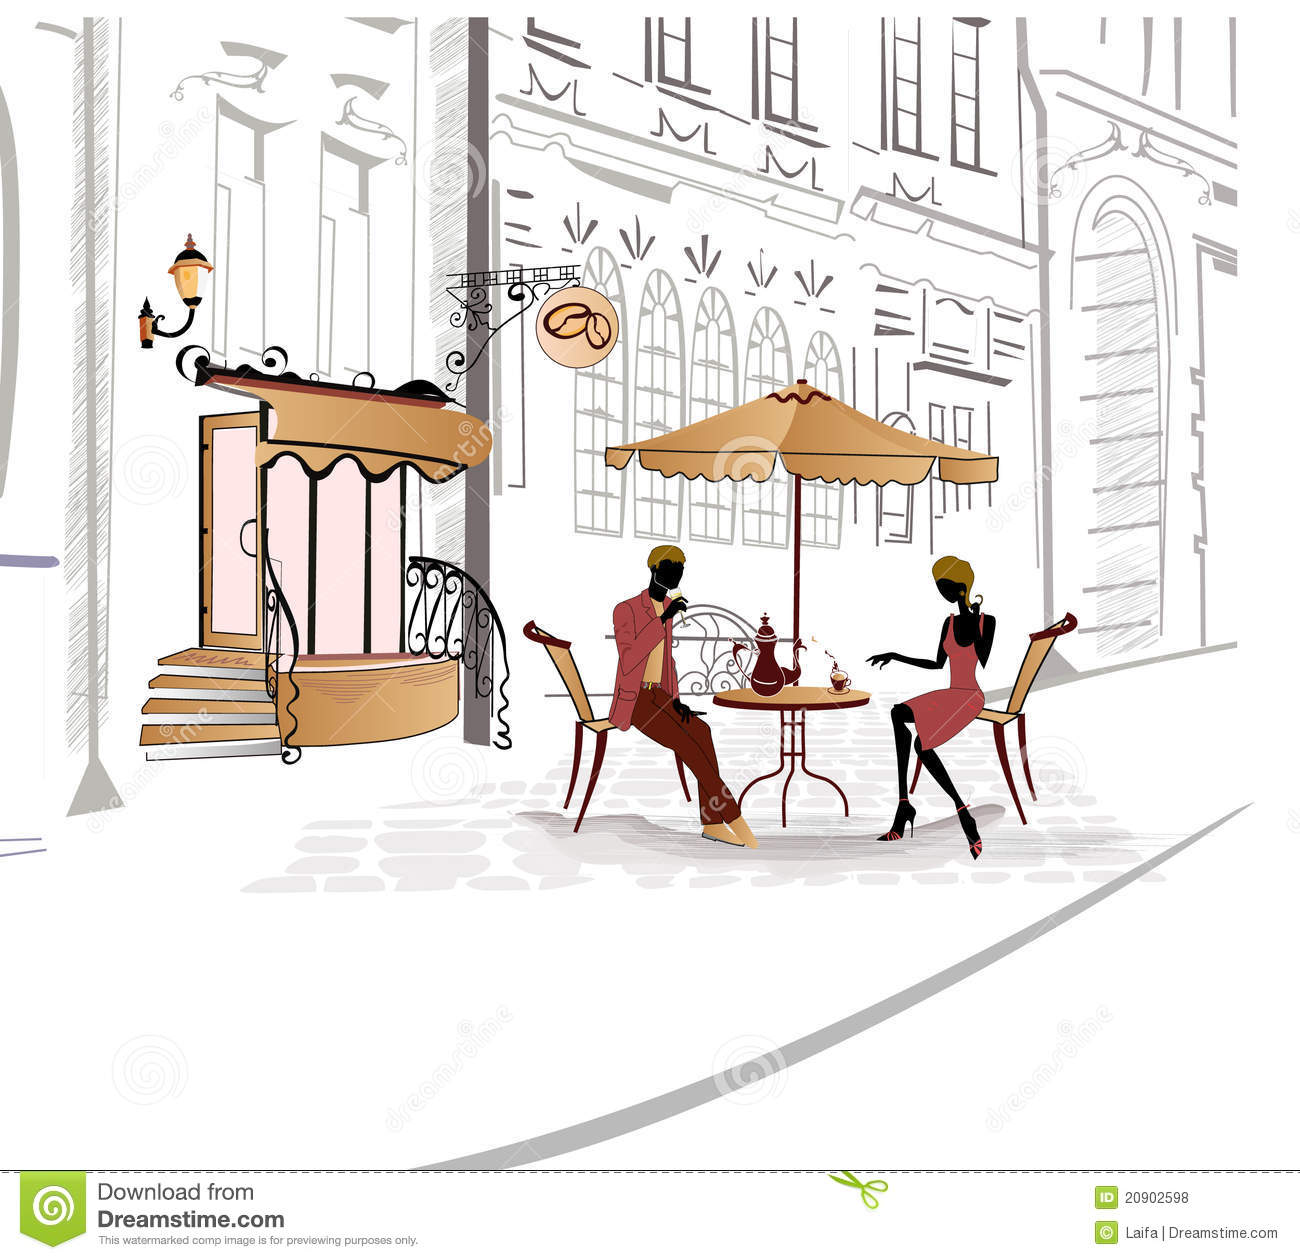 Series of sketches of streets with cafe